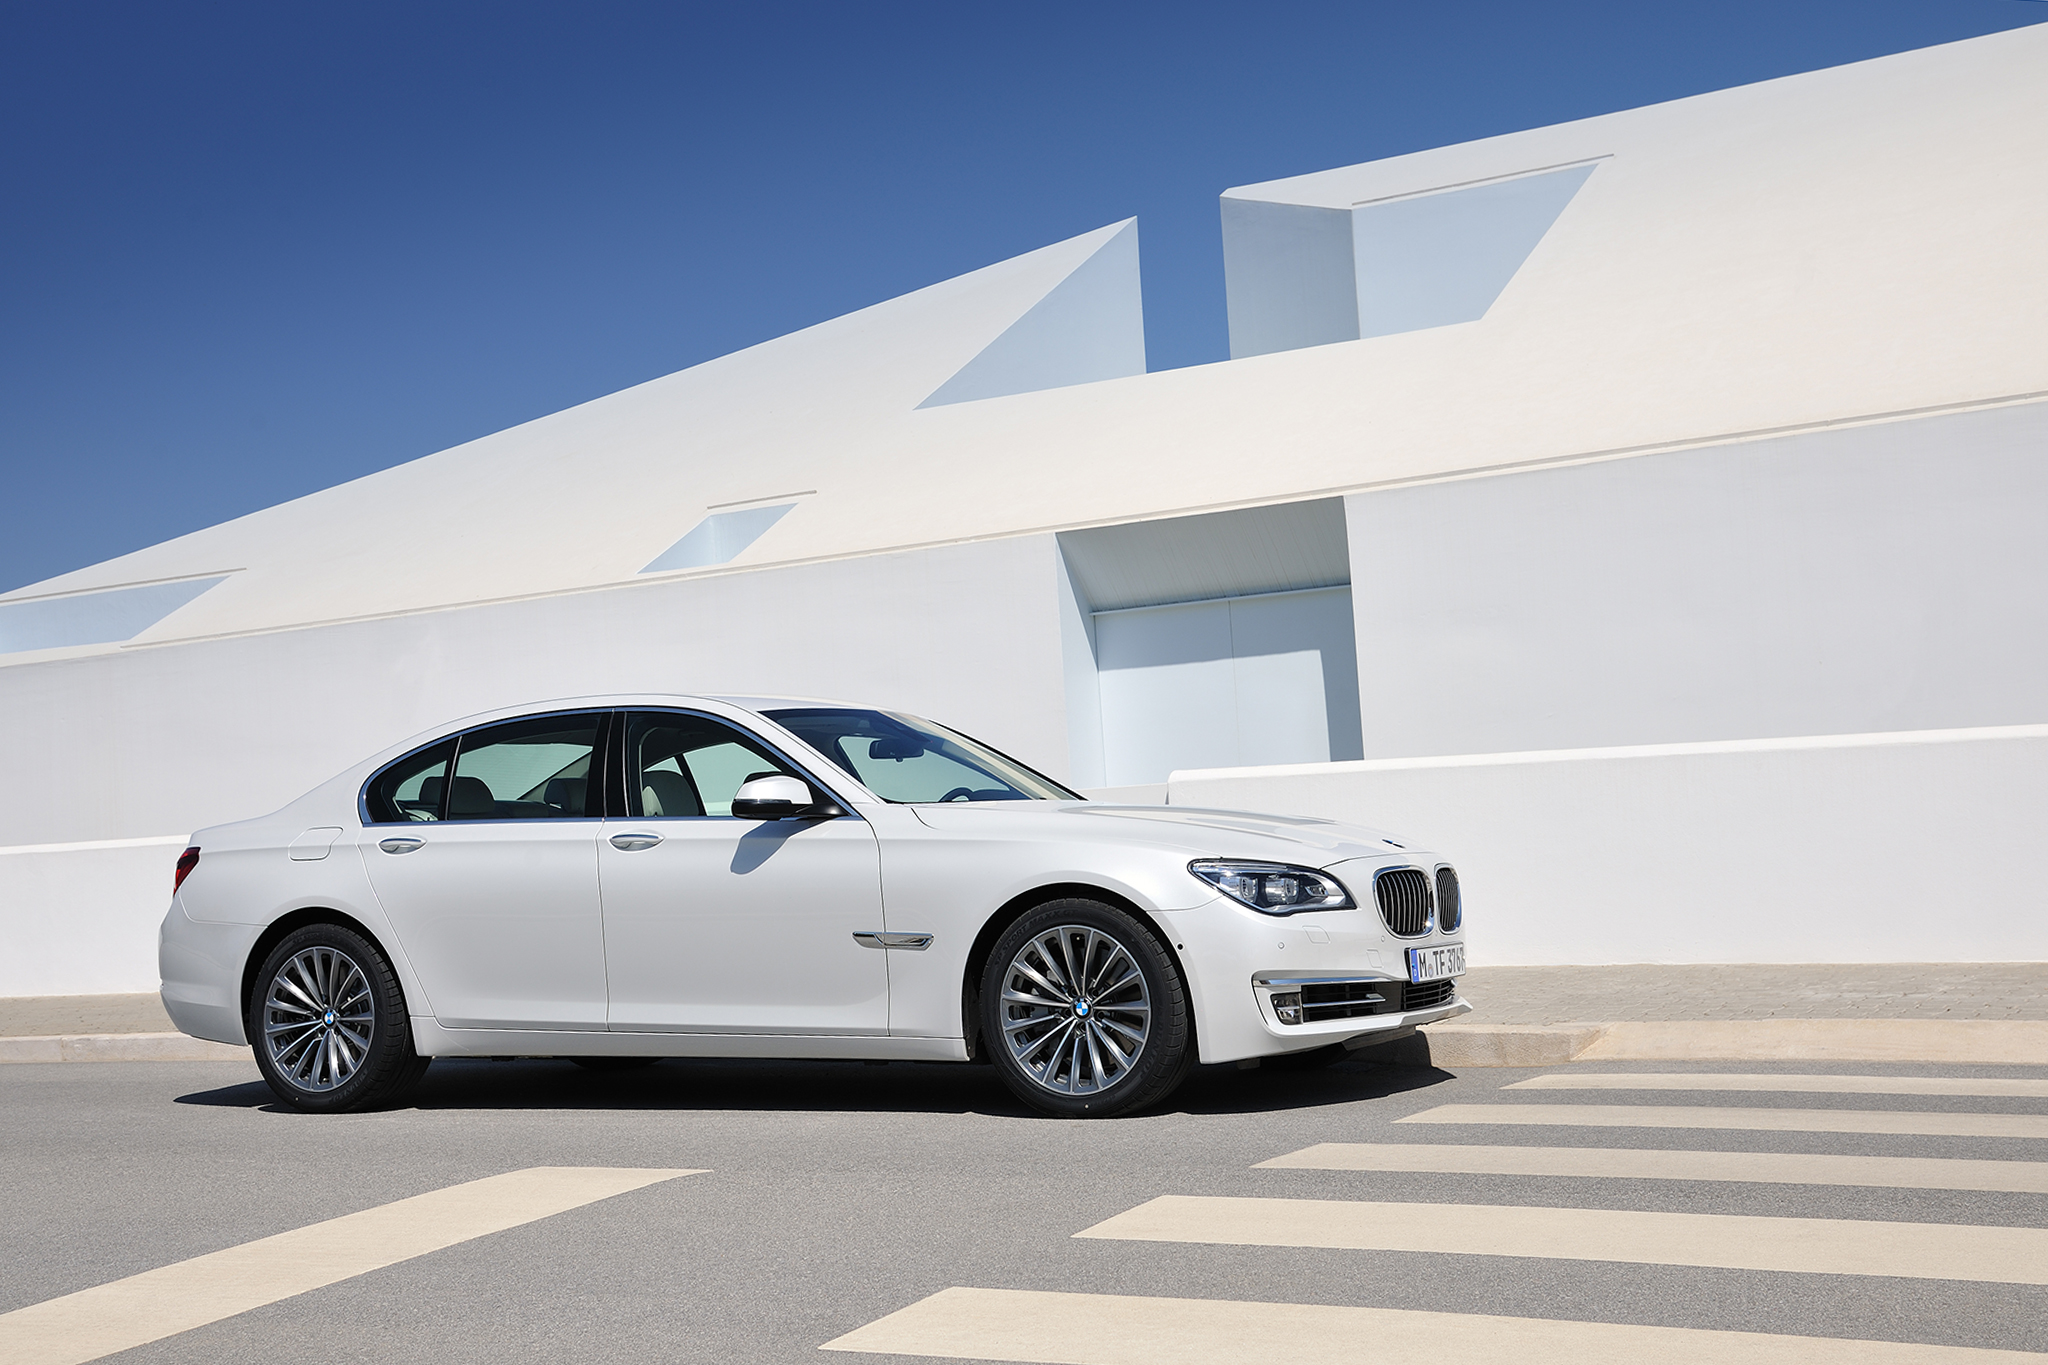 Future BMW Models to Offer More Distinct Styling